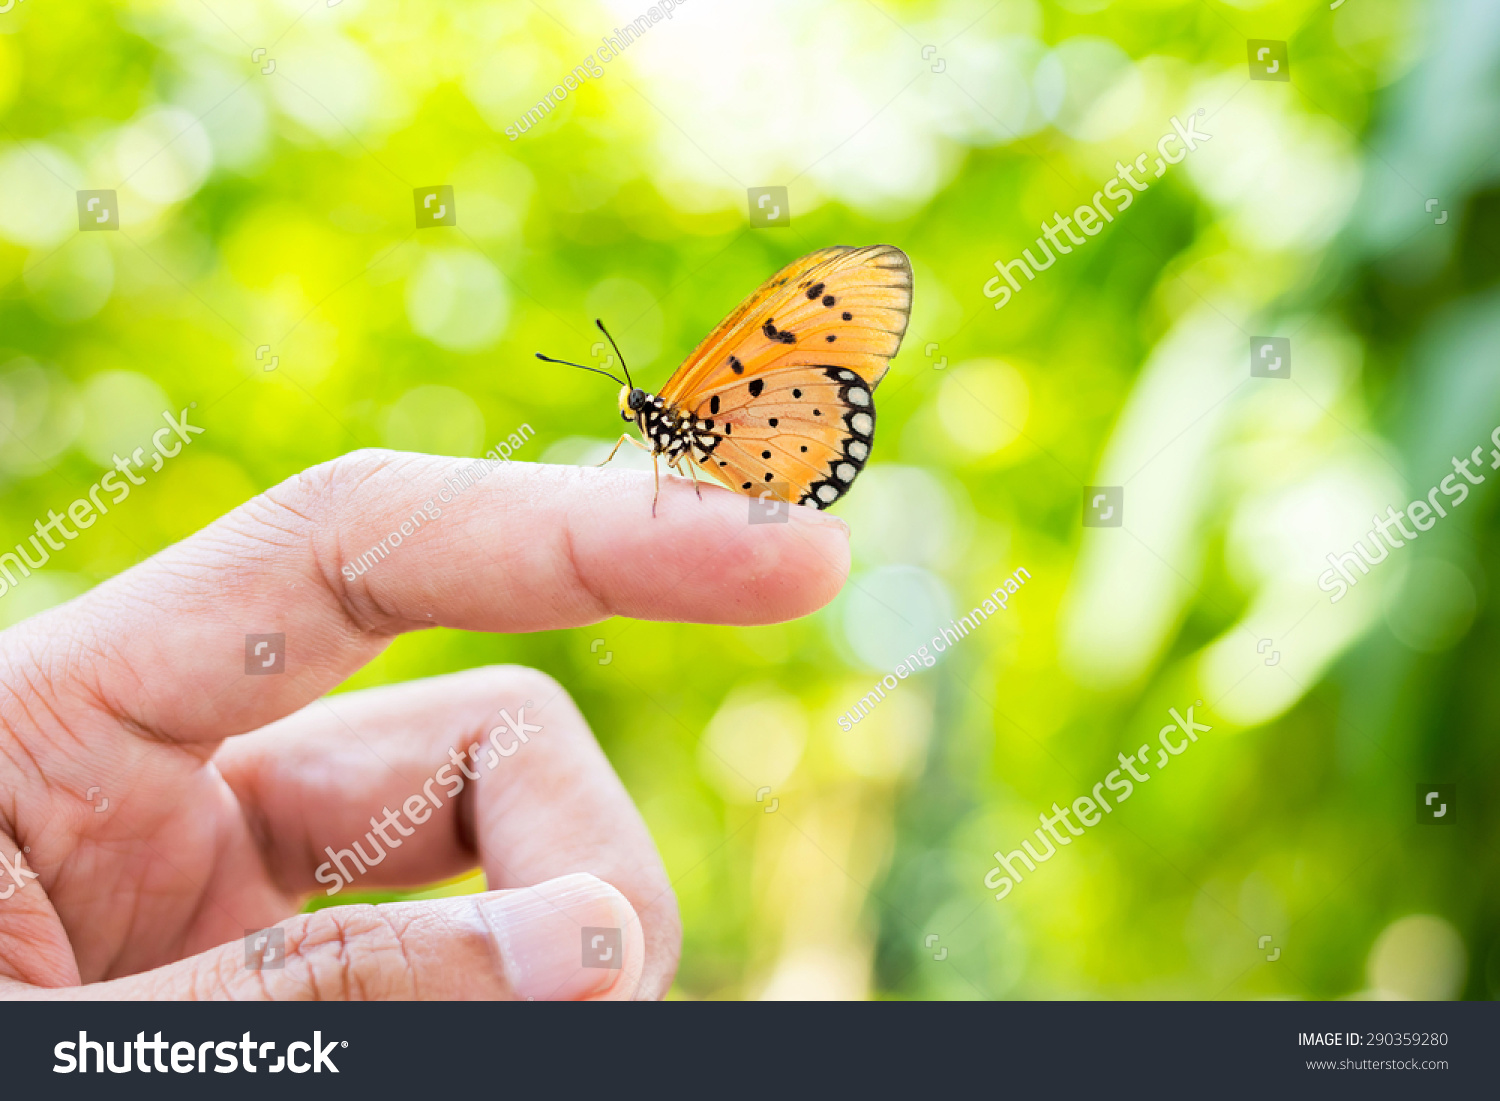 Uncategorized Butterfly Hand beautiful butterfly sitting on hand stock photo 290359280 hand